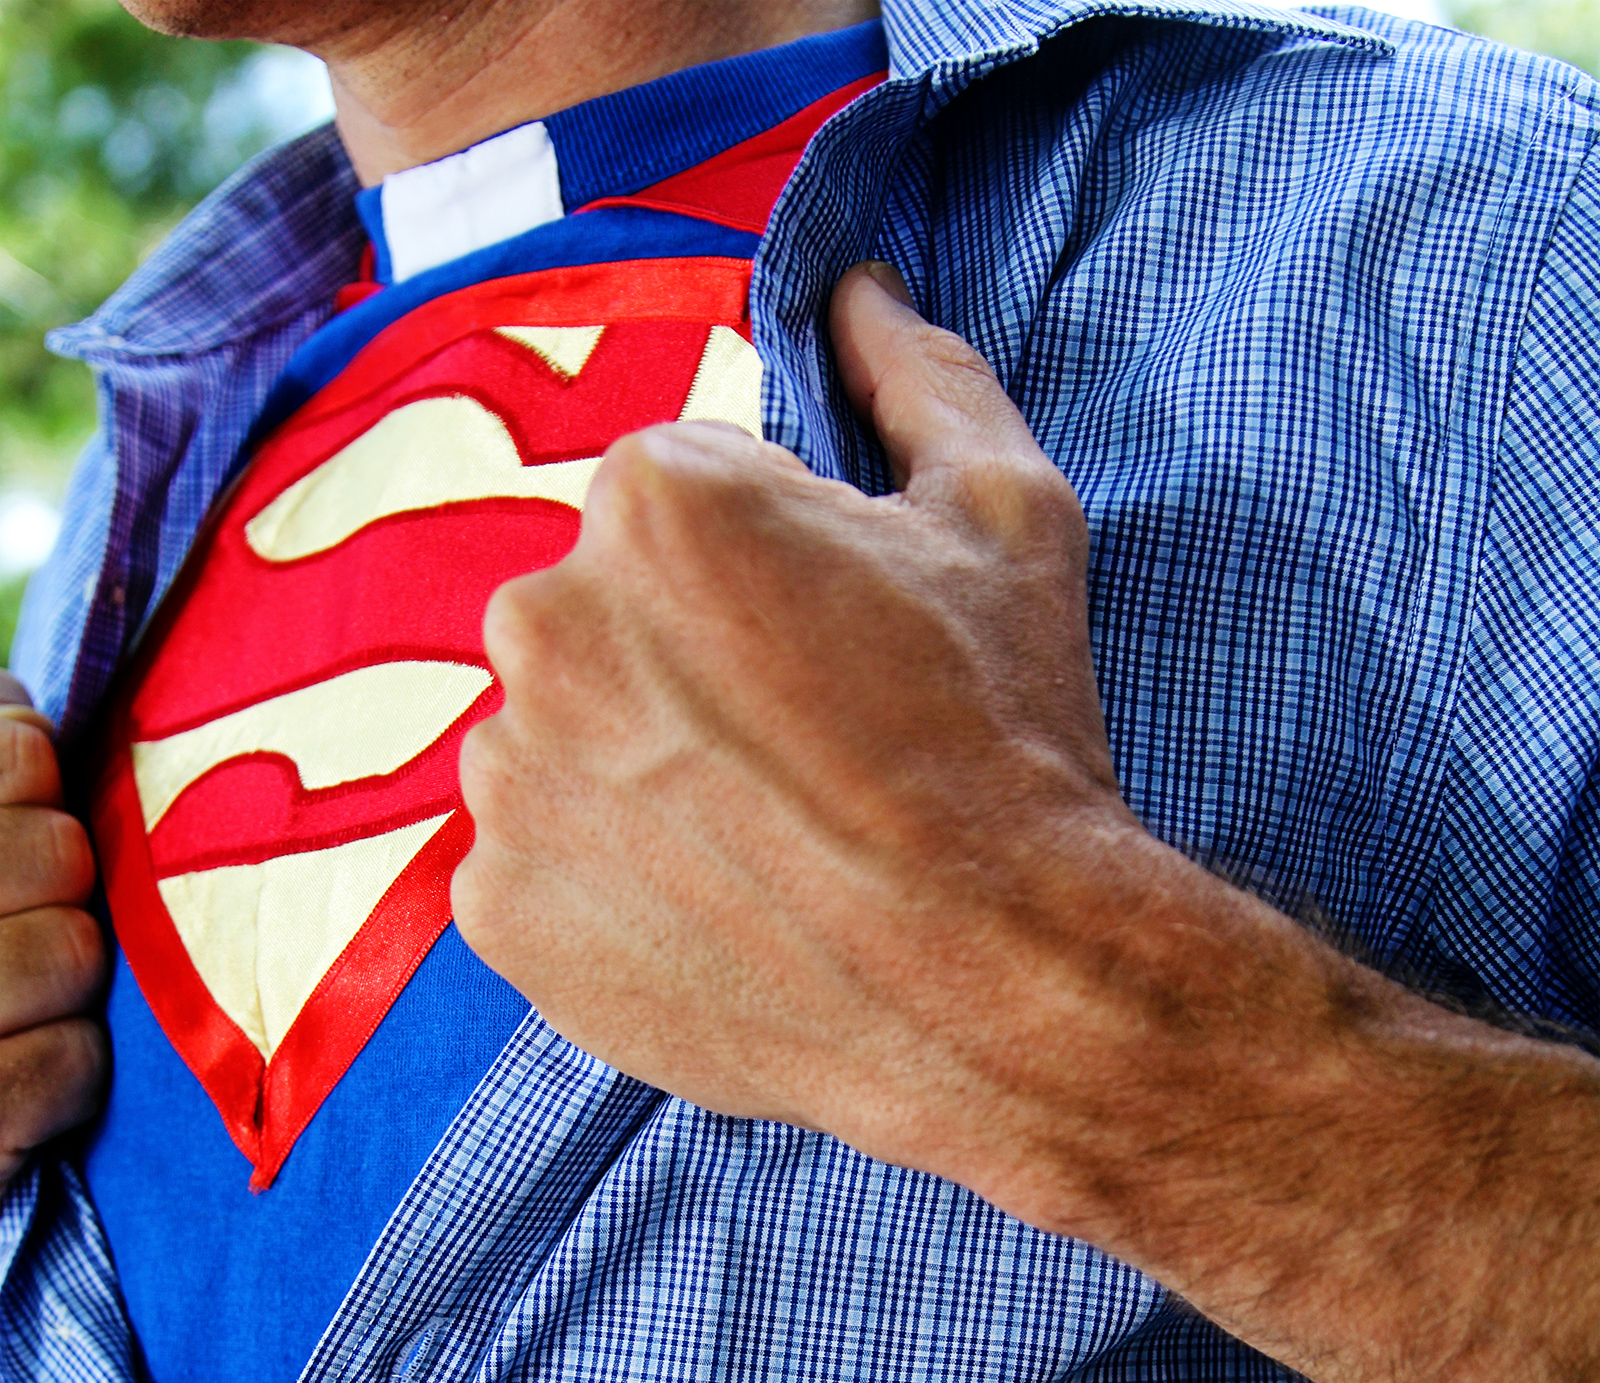 I saw a stock photo with superman and remembered someone had given me a superman shirt-- with clerical collar!